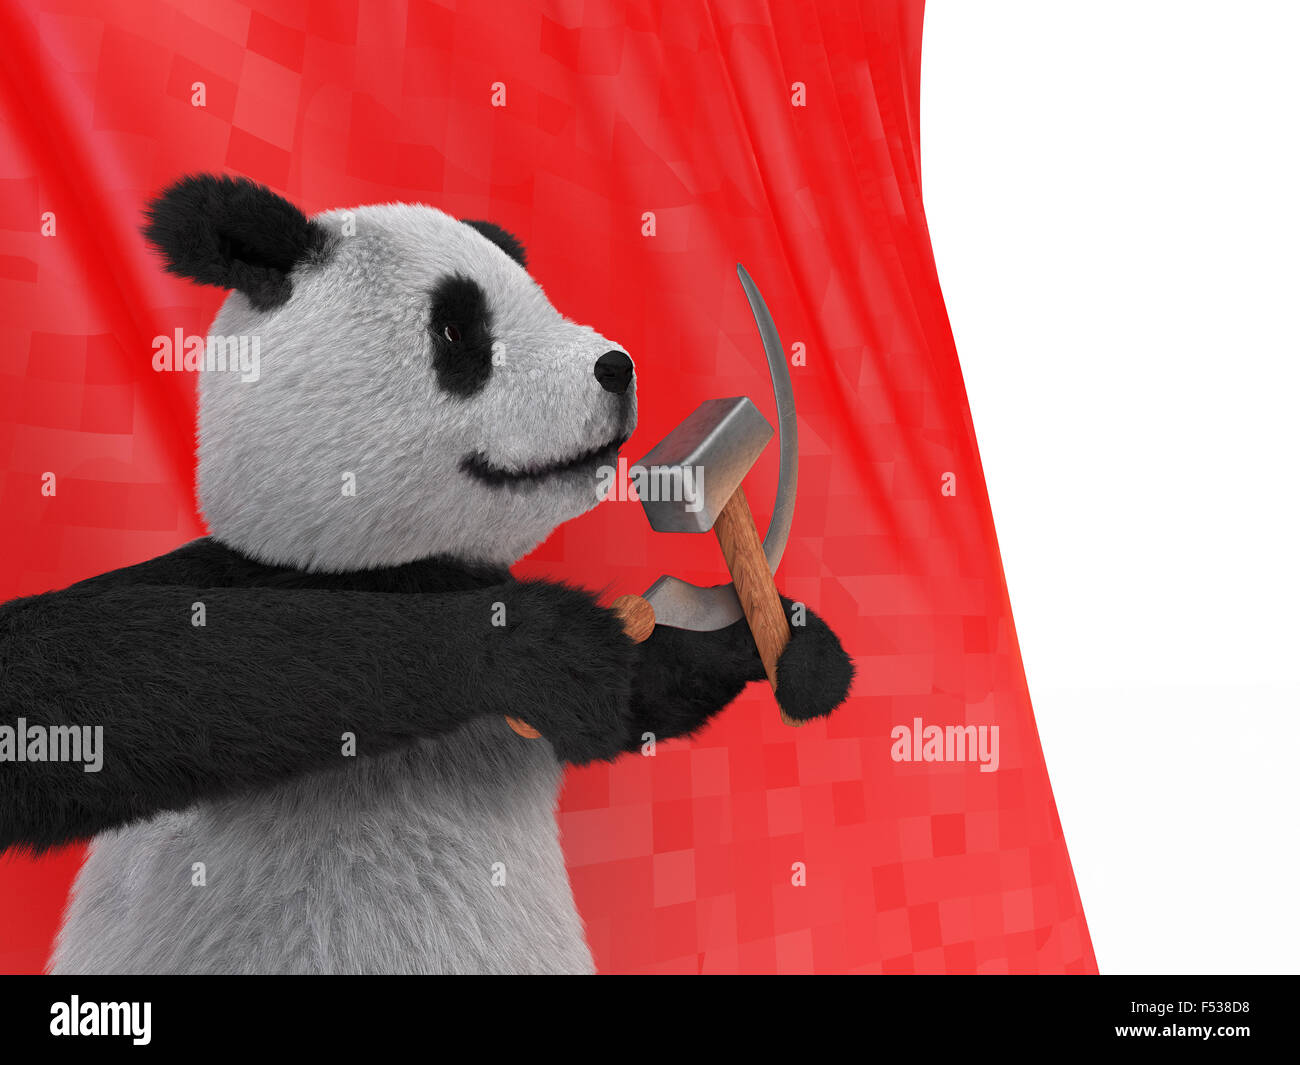 the inspired personage type of black-and-white Chinese panda, also referred to as bamboo bear holding in its paws - Stock Image